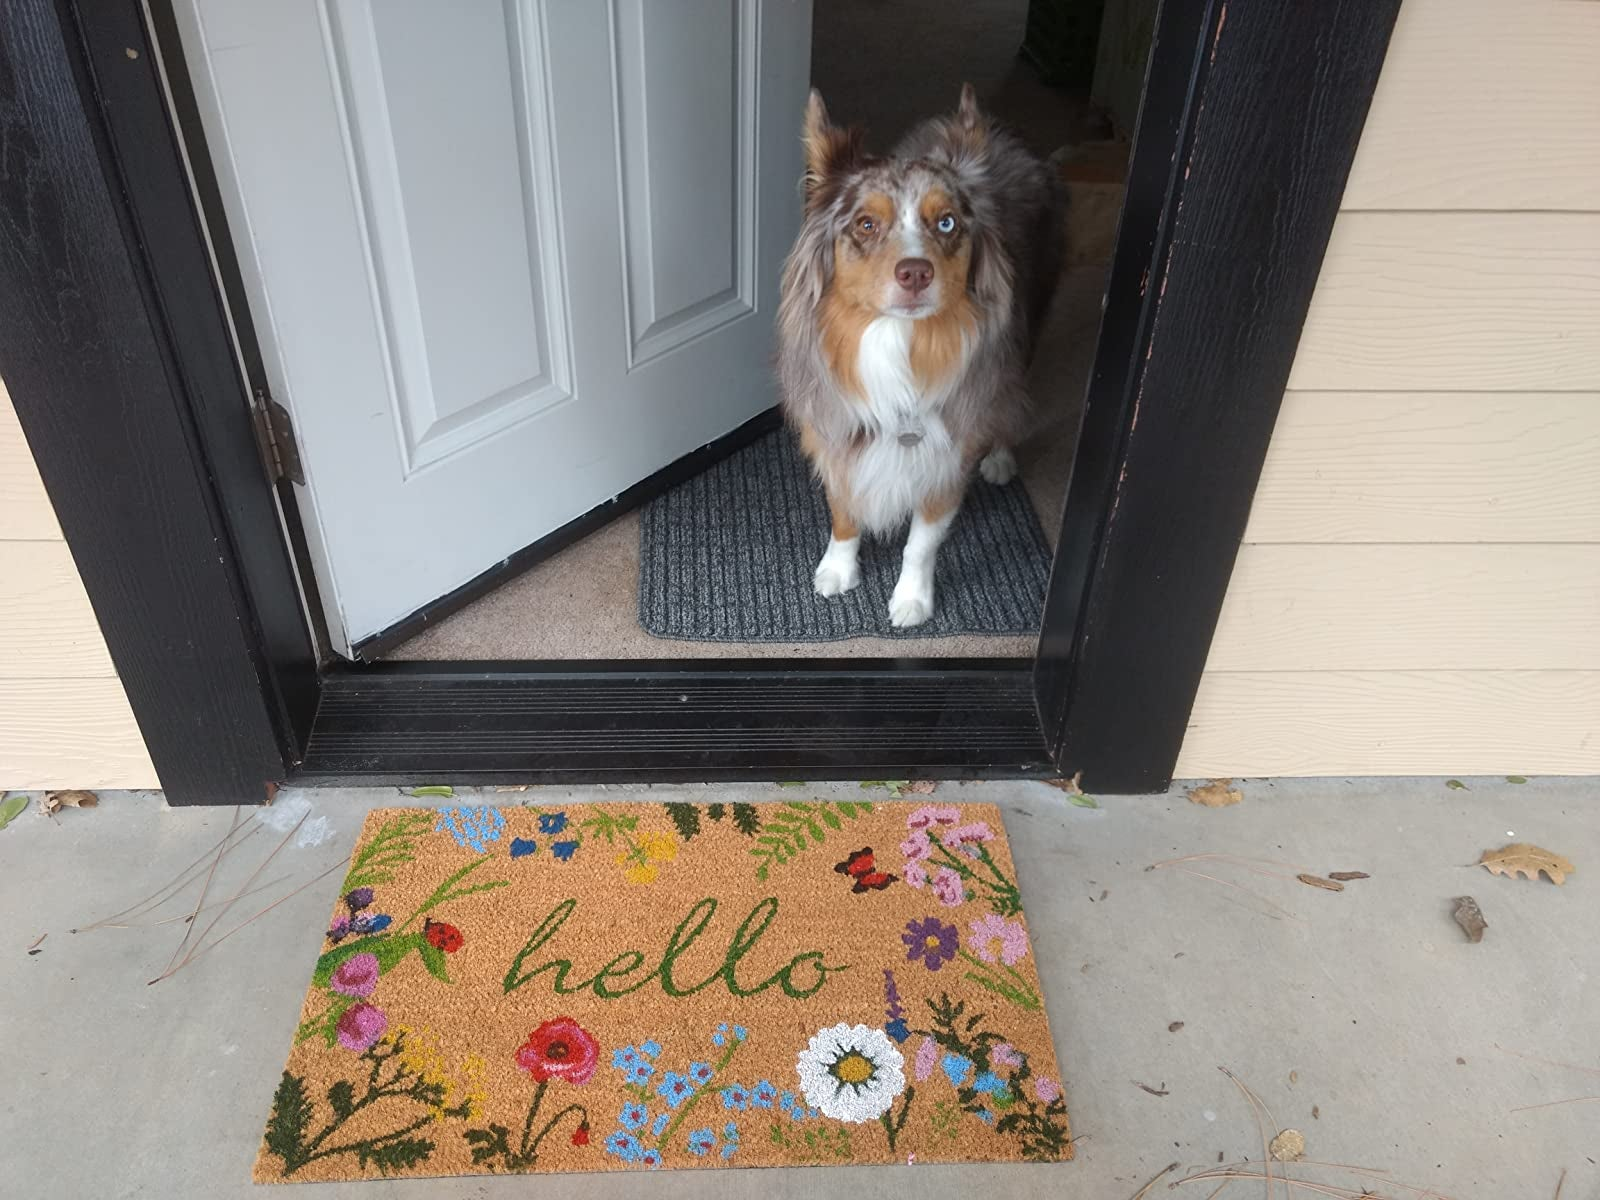 reviewer's dog at the door with the brown and colorful floral mat that reads